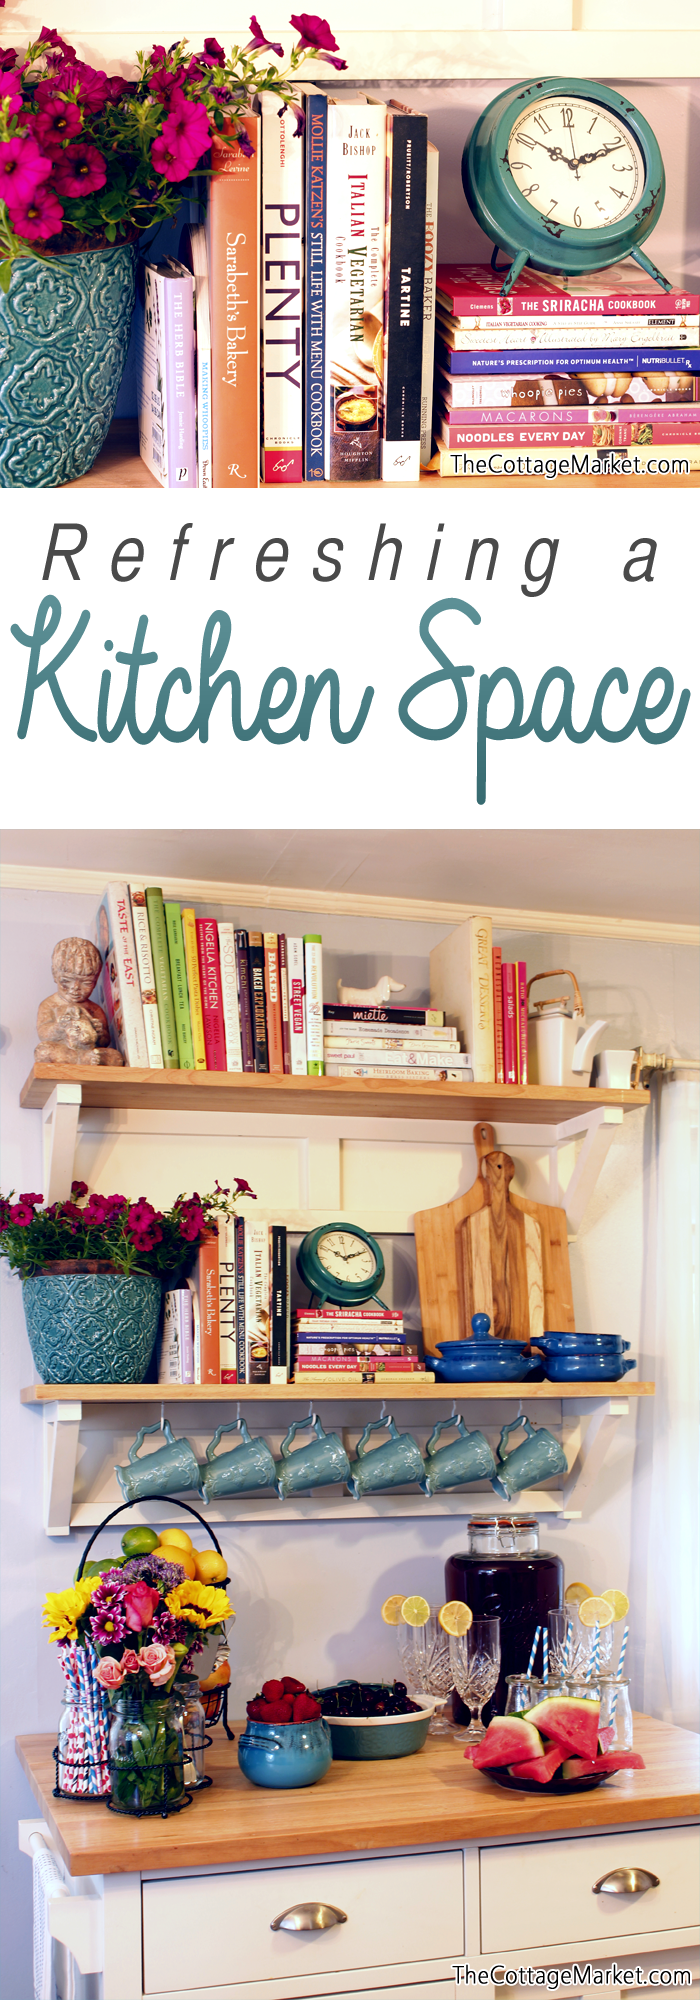 kitchenspace-tower2